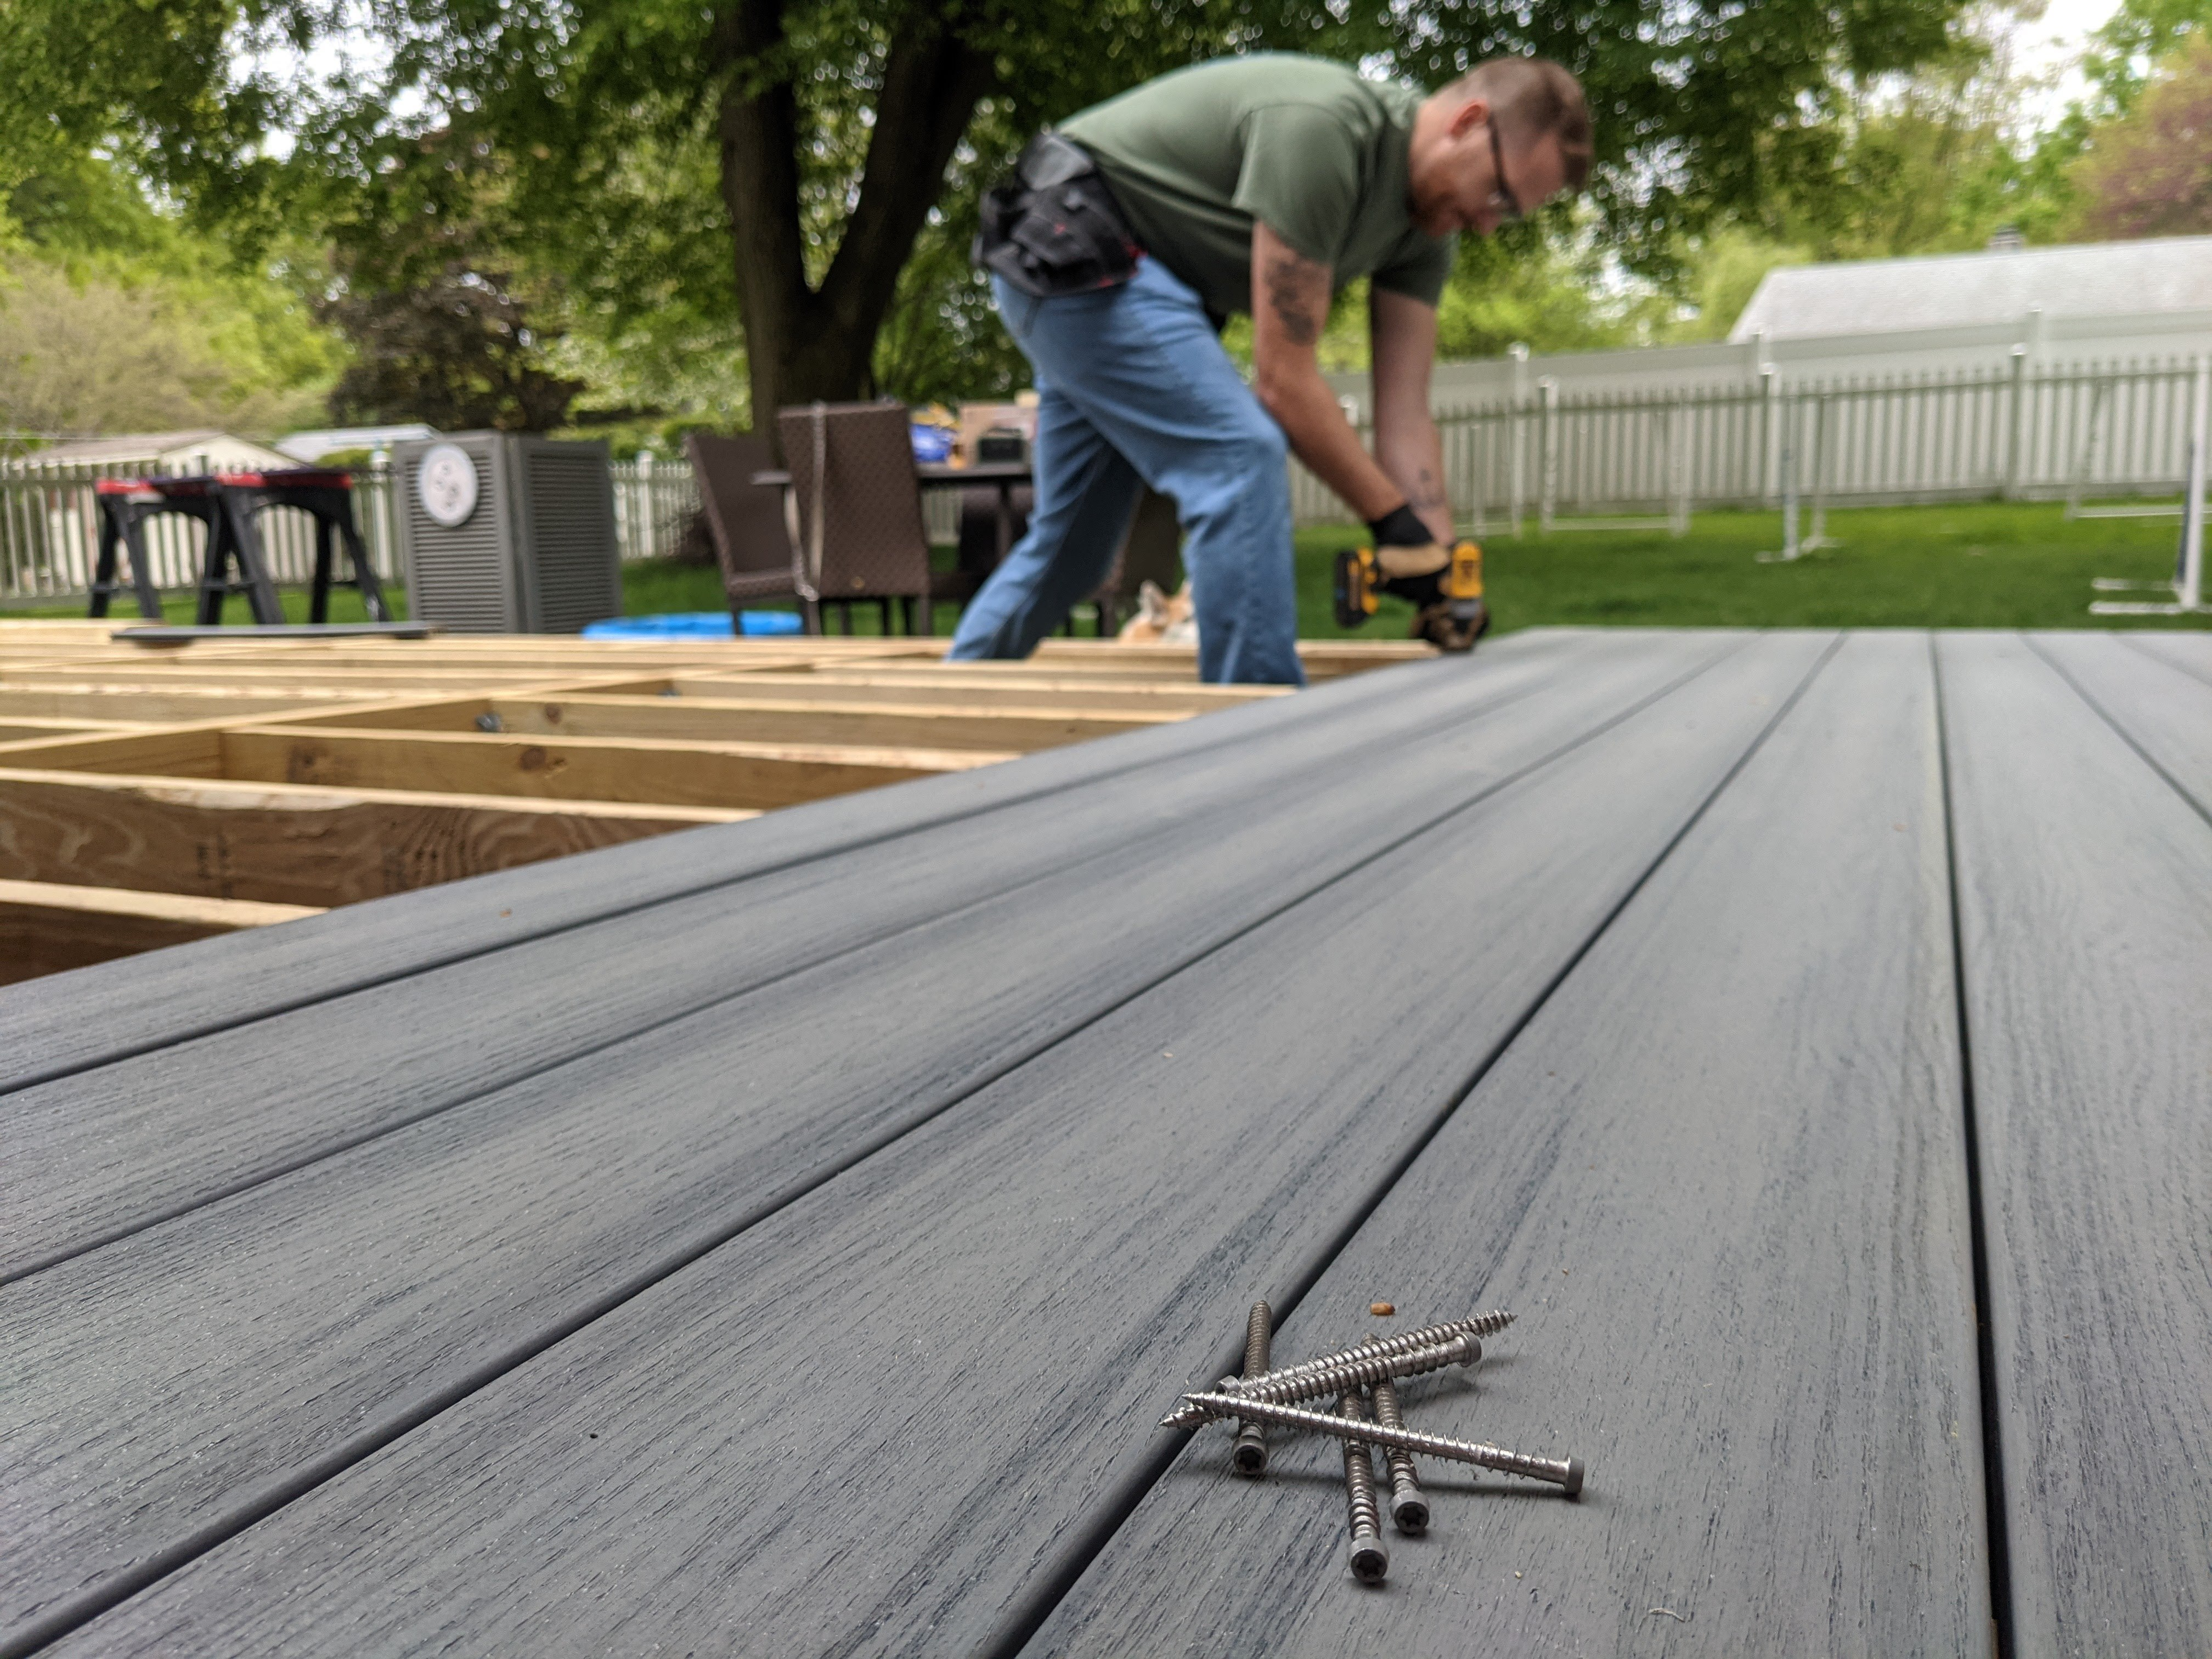 7 Safety Issues to Check on Your Deck